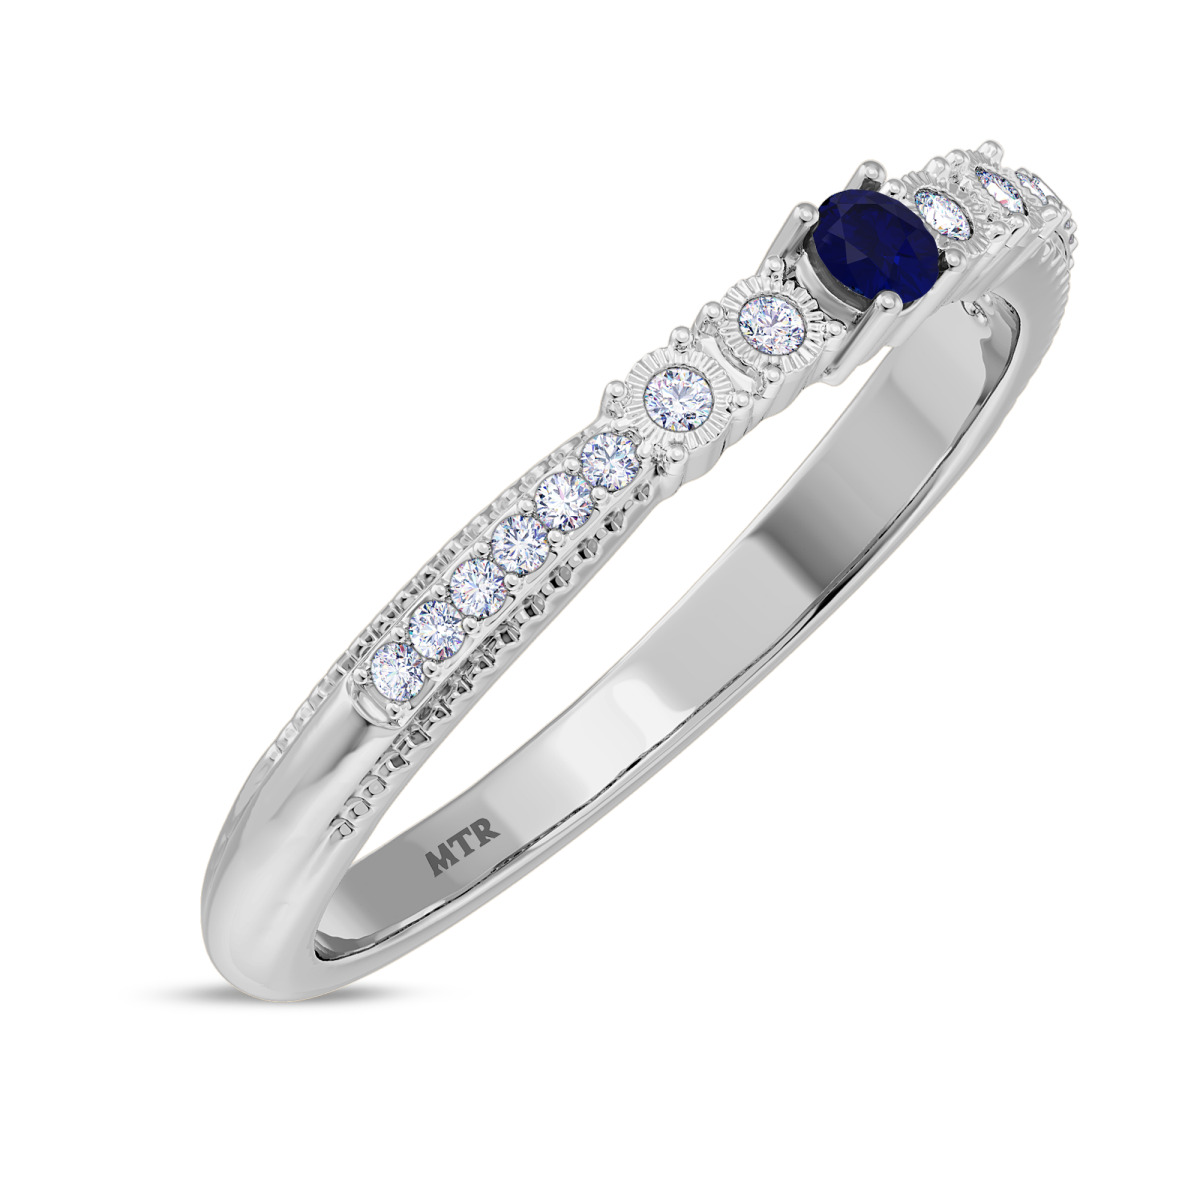 1/6 CT. T.W. Sapphire Ladies Wedding Band  14K White Gold